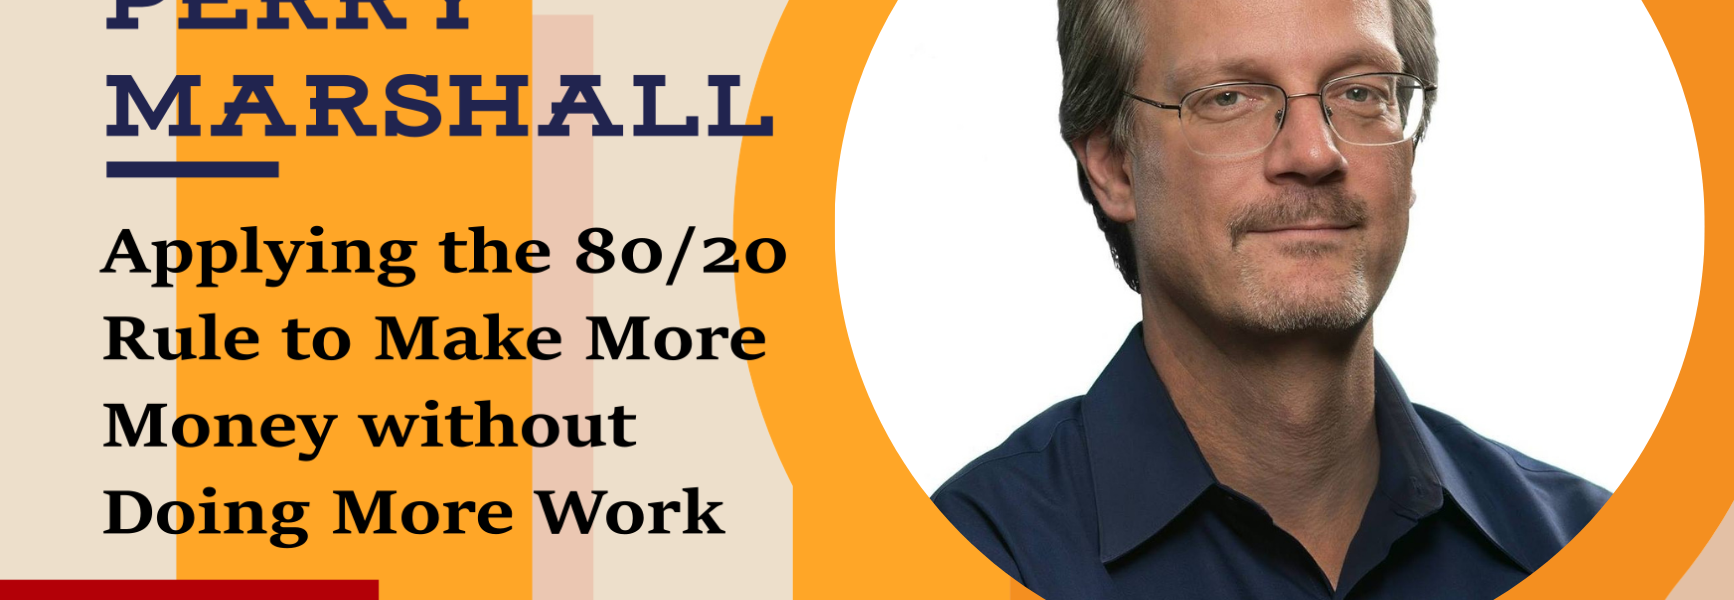 Applying the 80/20 Rule to Make More Money without Doing More Work